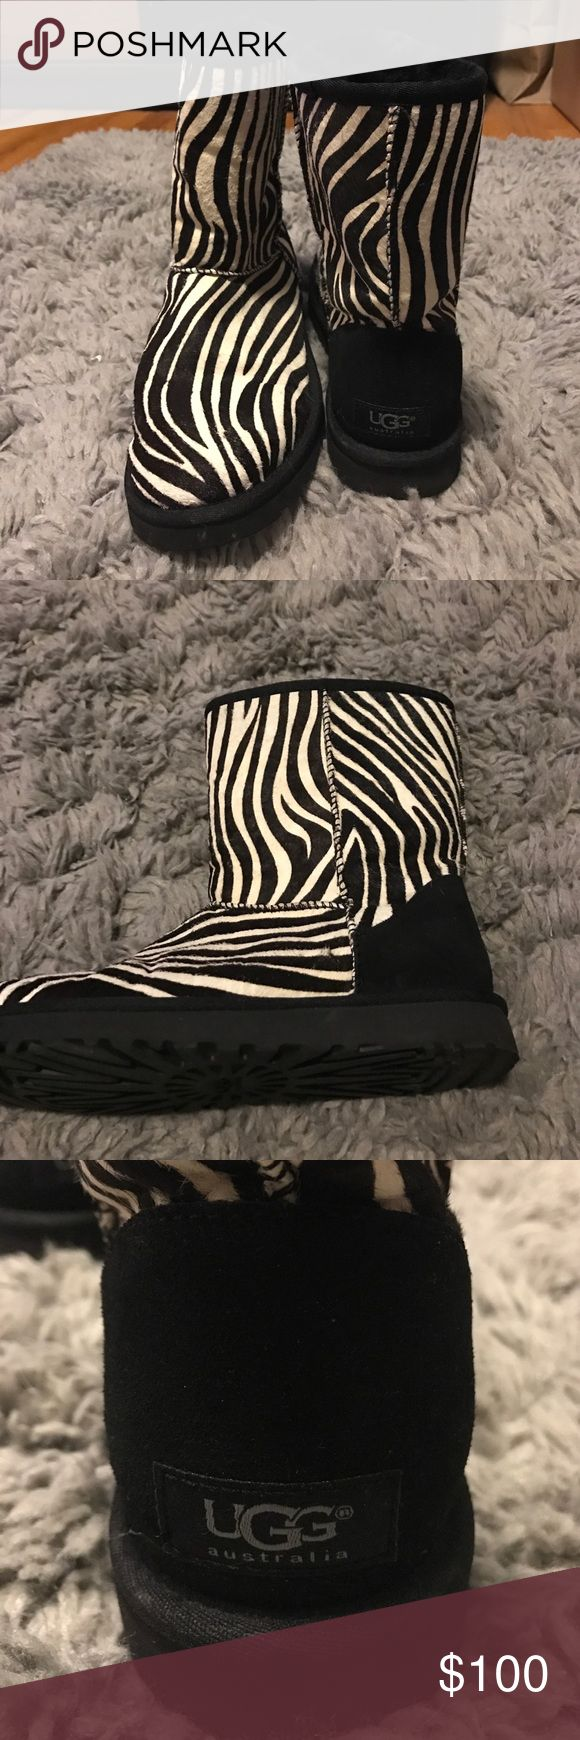 UGG zebra boots Super stylish zebra real UGG boots, worn once, great condition! UGG Shoes Ankle Boots & Booties